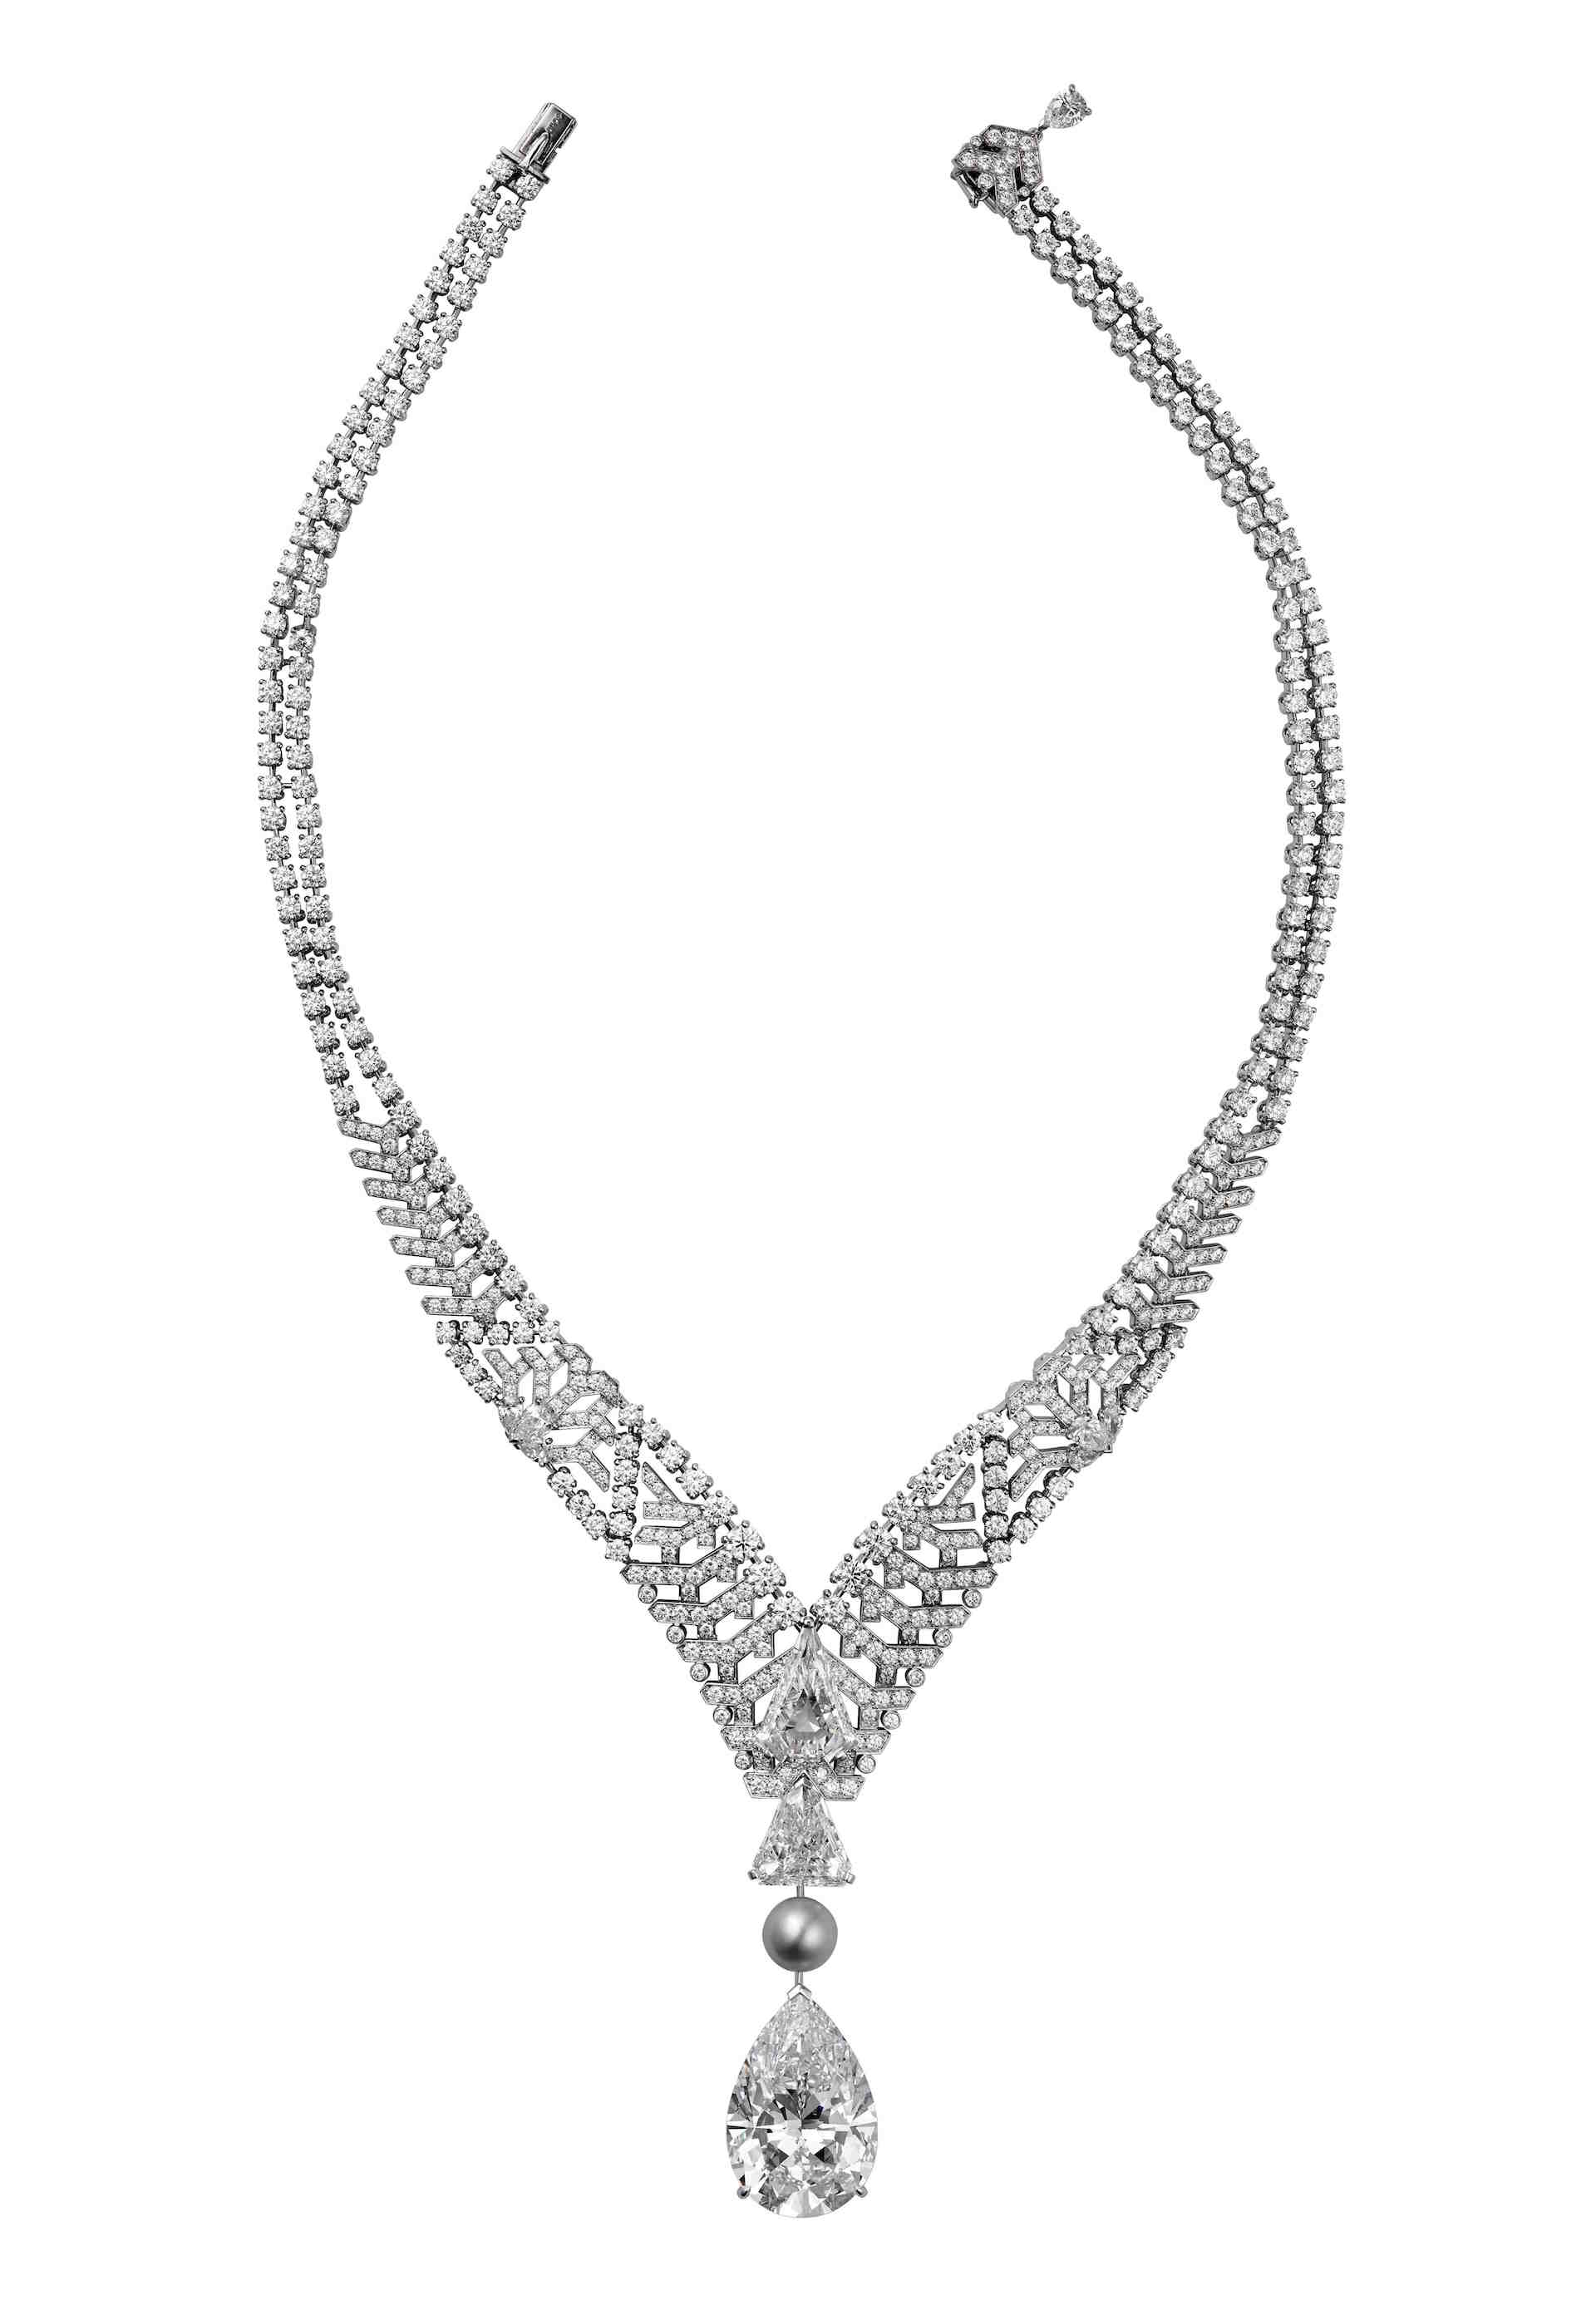 Pur Absolu necklace